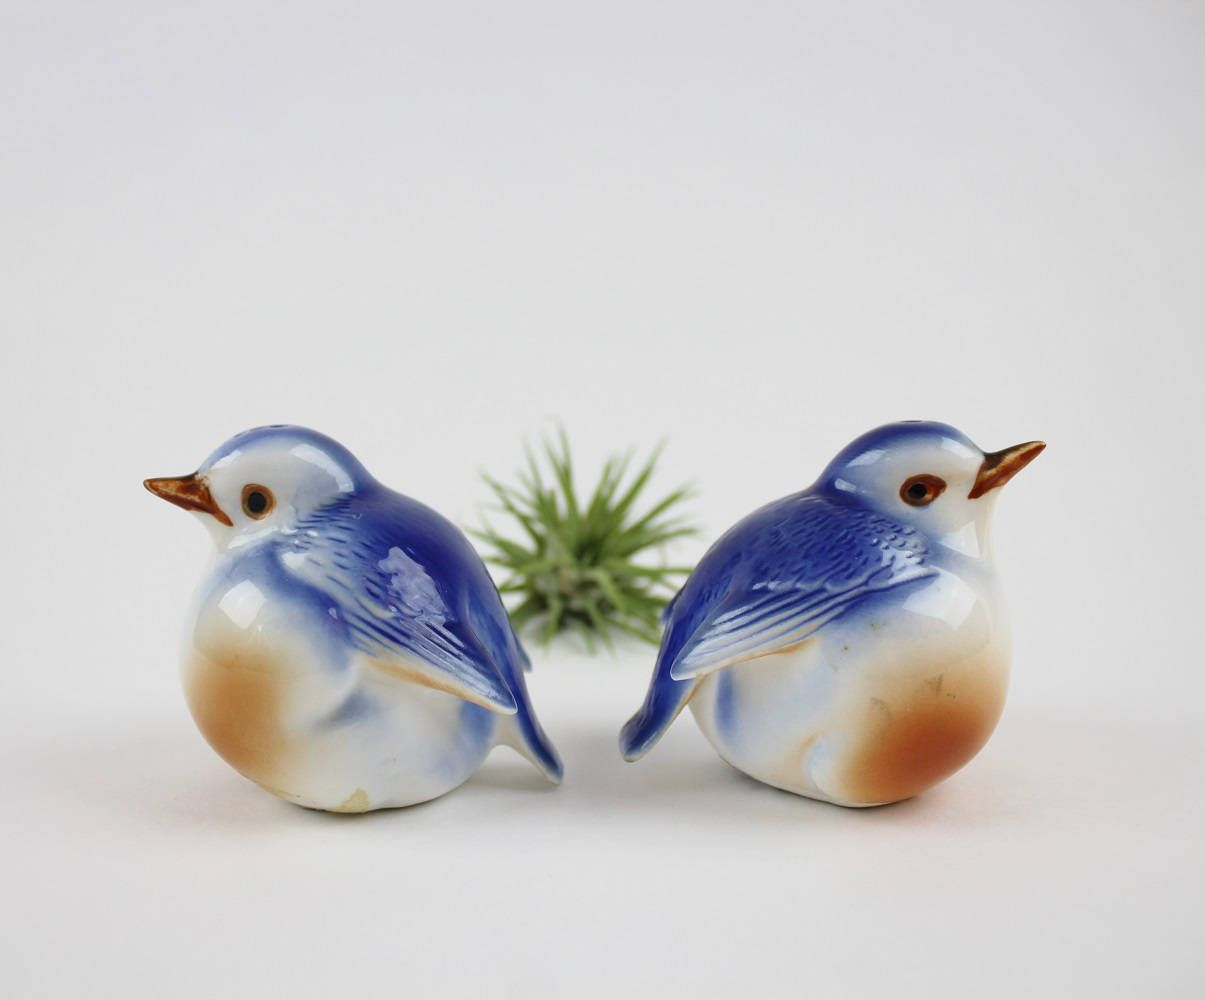 Fantastical Bird Salt And Pepper Shakers. Vintage Ceramic Red Bellied Robin Salt and Pepper Shakers  Bone China Round Birds Chubby Bird Figurines